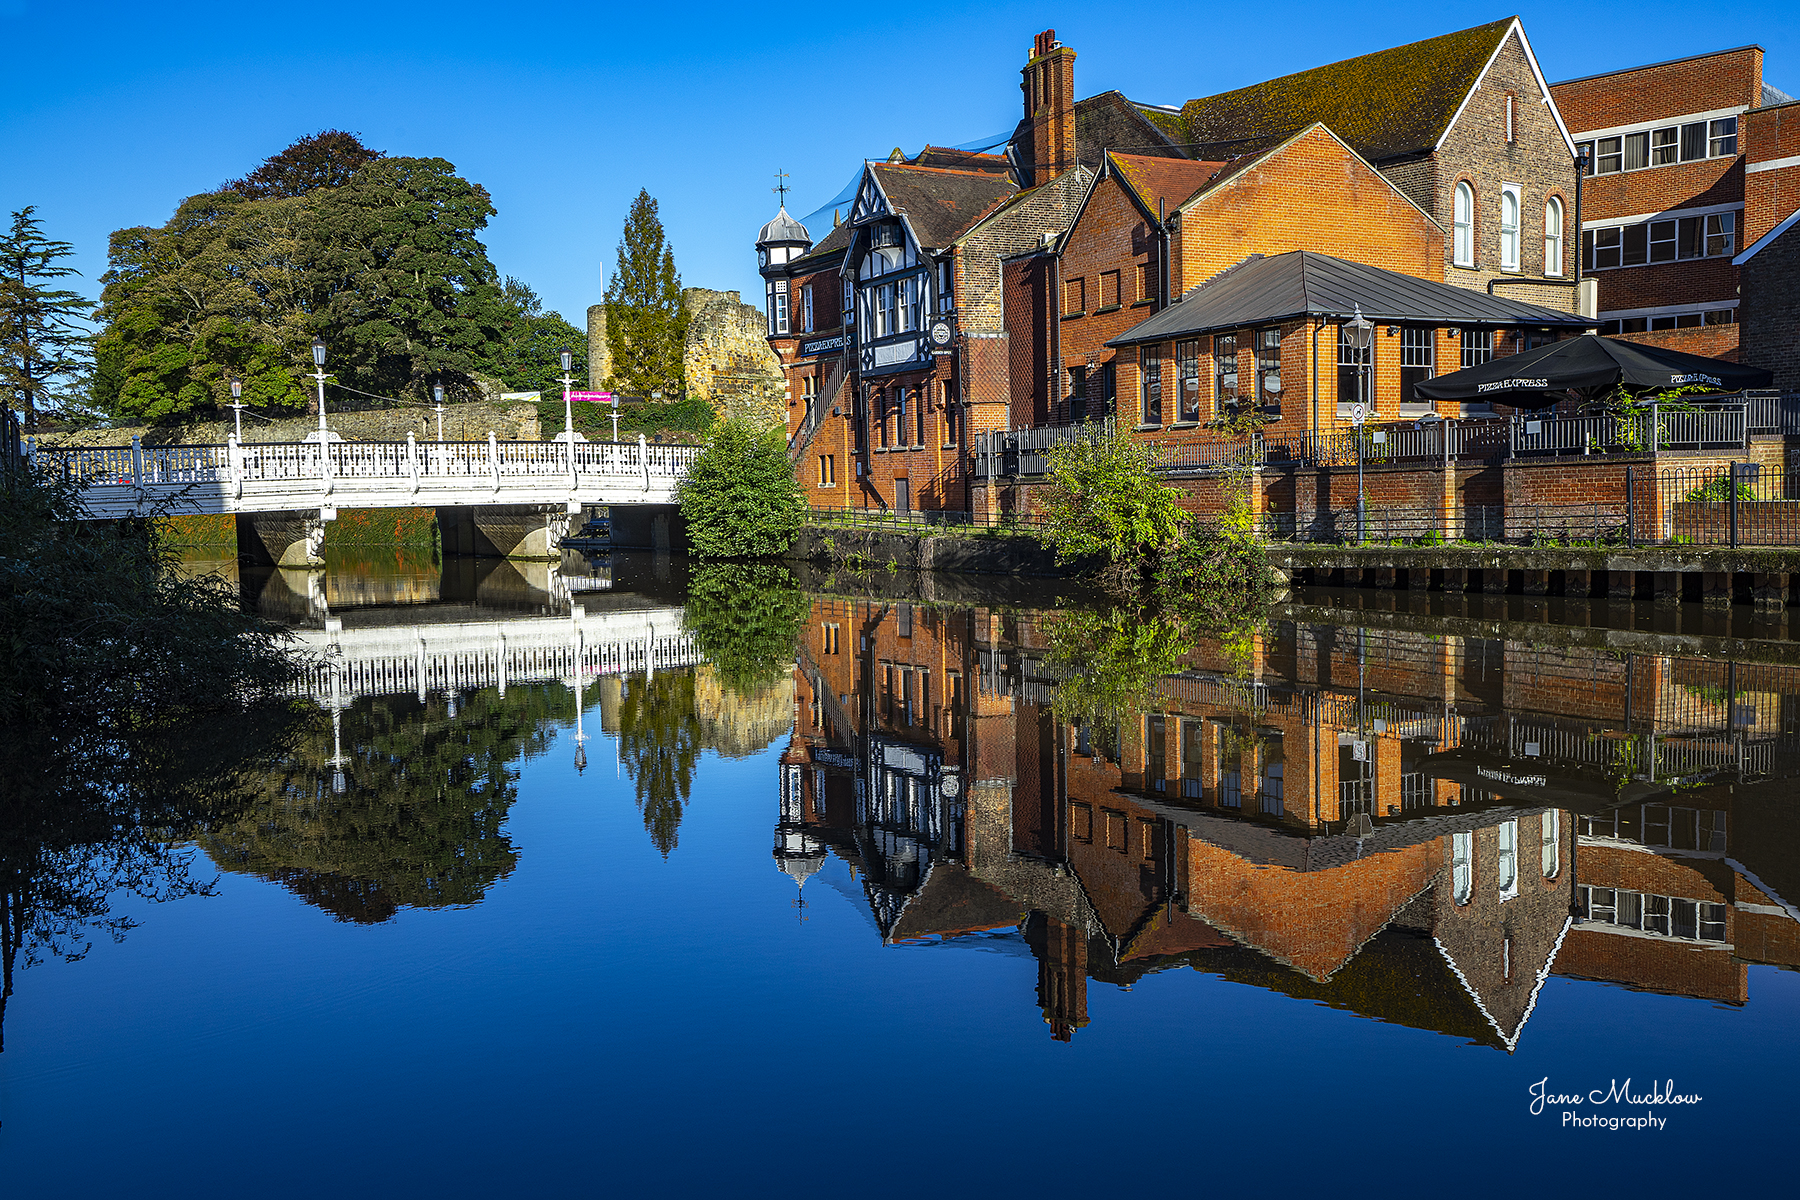 Photo of reflections in the River Medway of the Big Bridge, Tonbridge, by Jane Mucklow